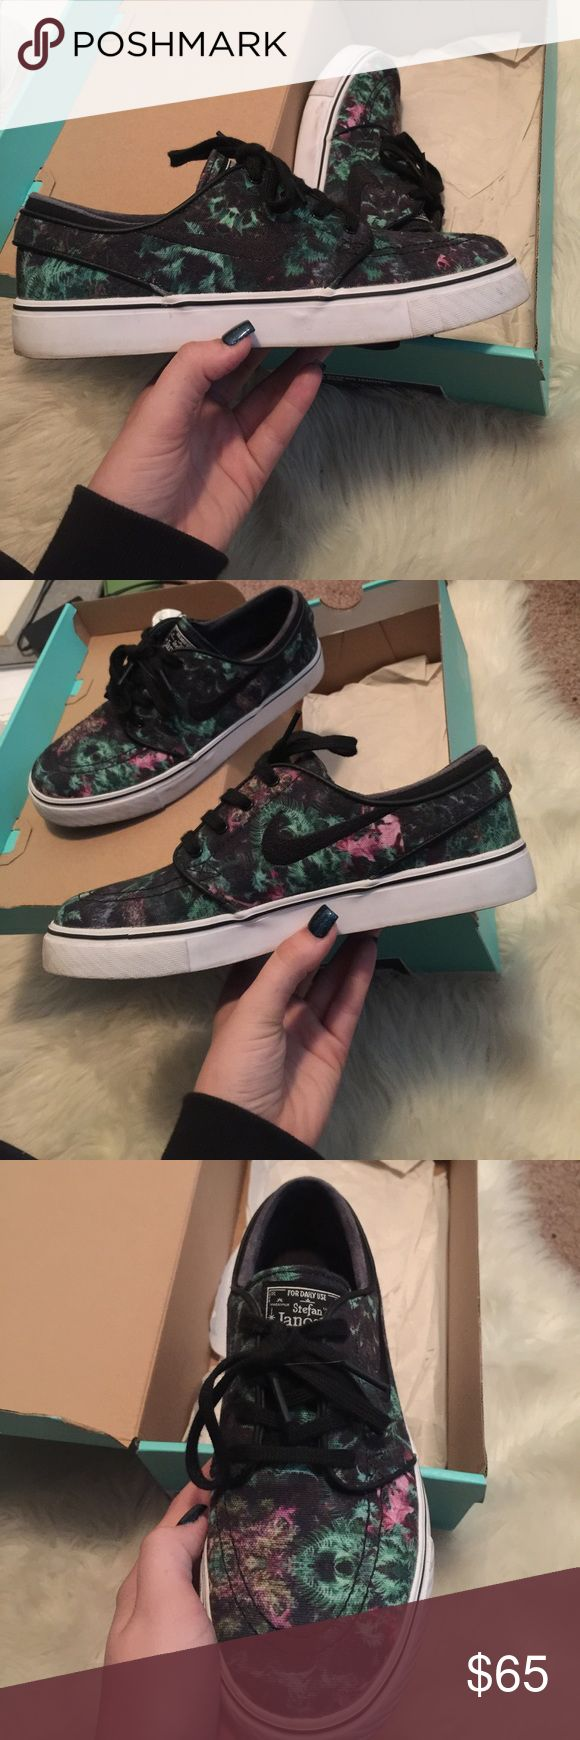 Nike Stefan janoskis women's 7.5 Gently worn black green purple janoskis women's 7.5 ready for a new owner. Comes with extra pair of black laces Nike Shoes Sneakers